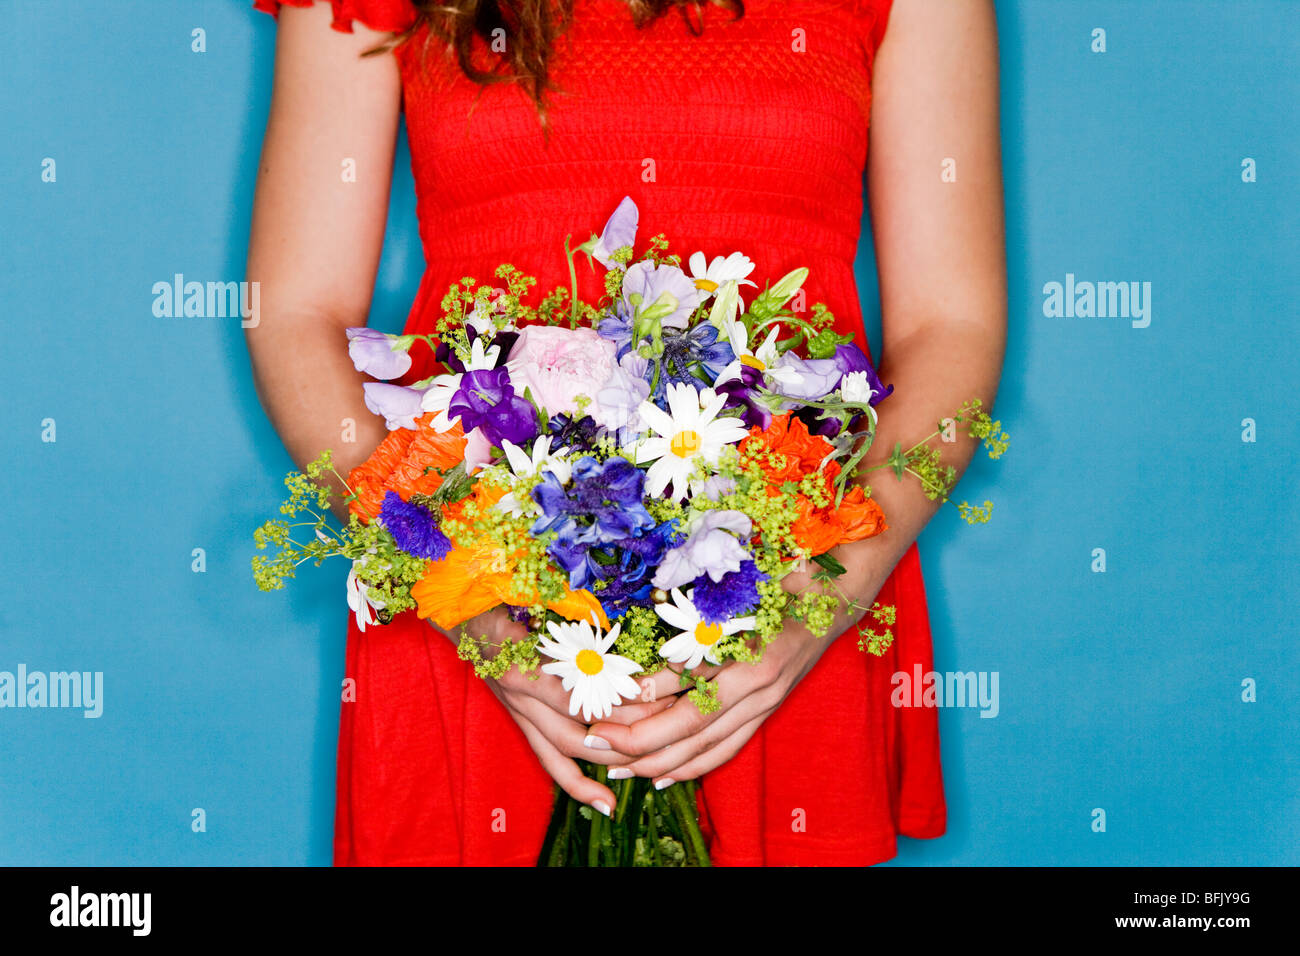 Girl in a red dress holding flowers. - Stock Image